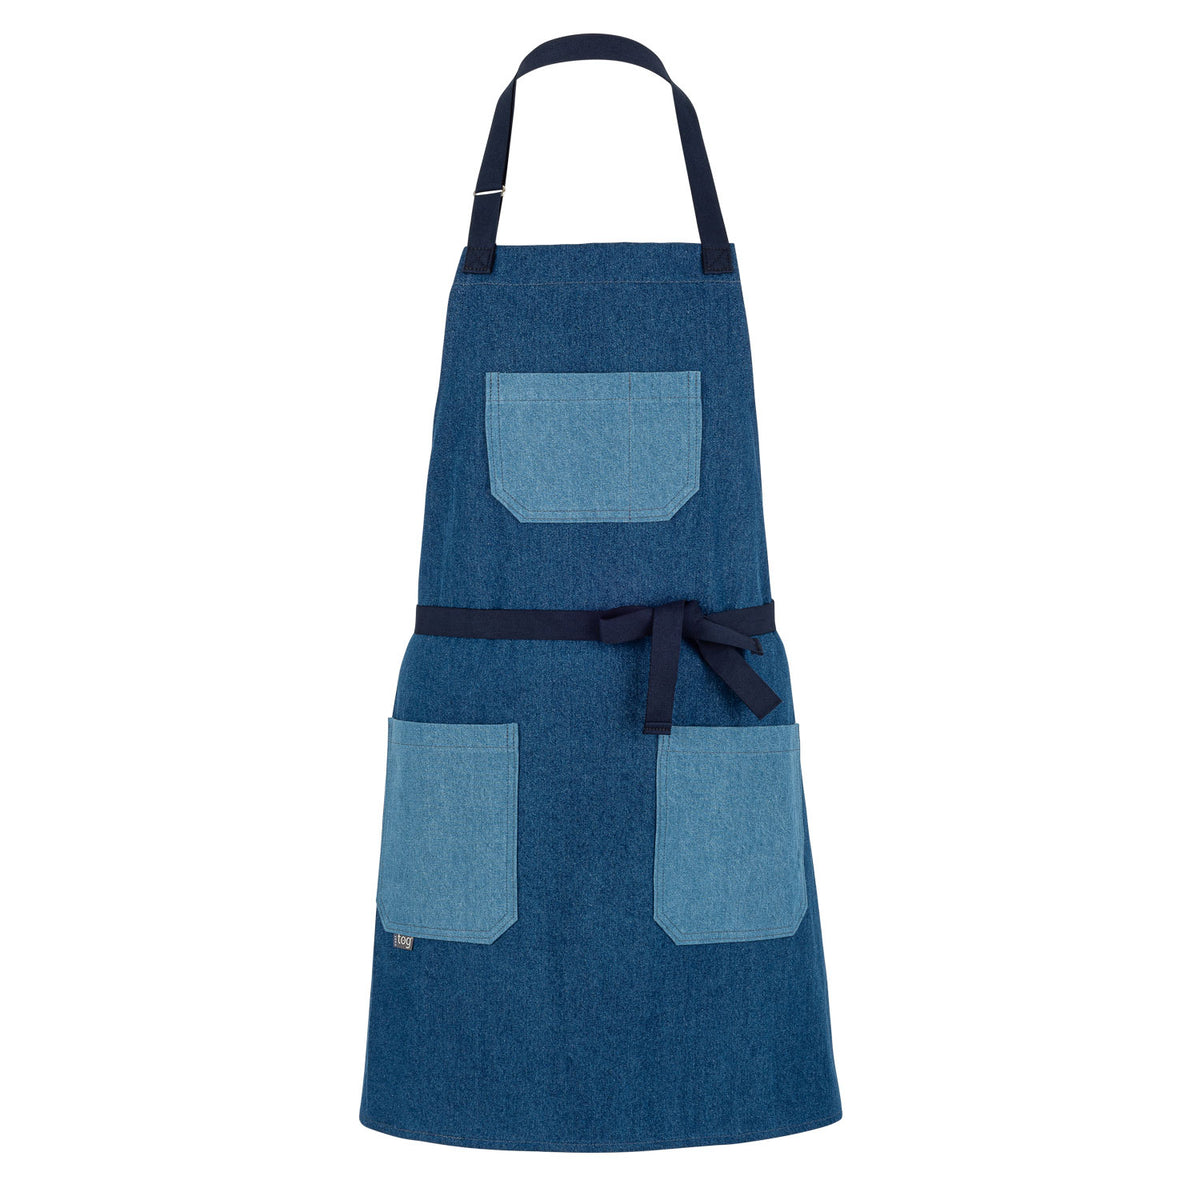 Chicago Blues Apron-Apron-ChefTog LLC